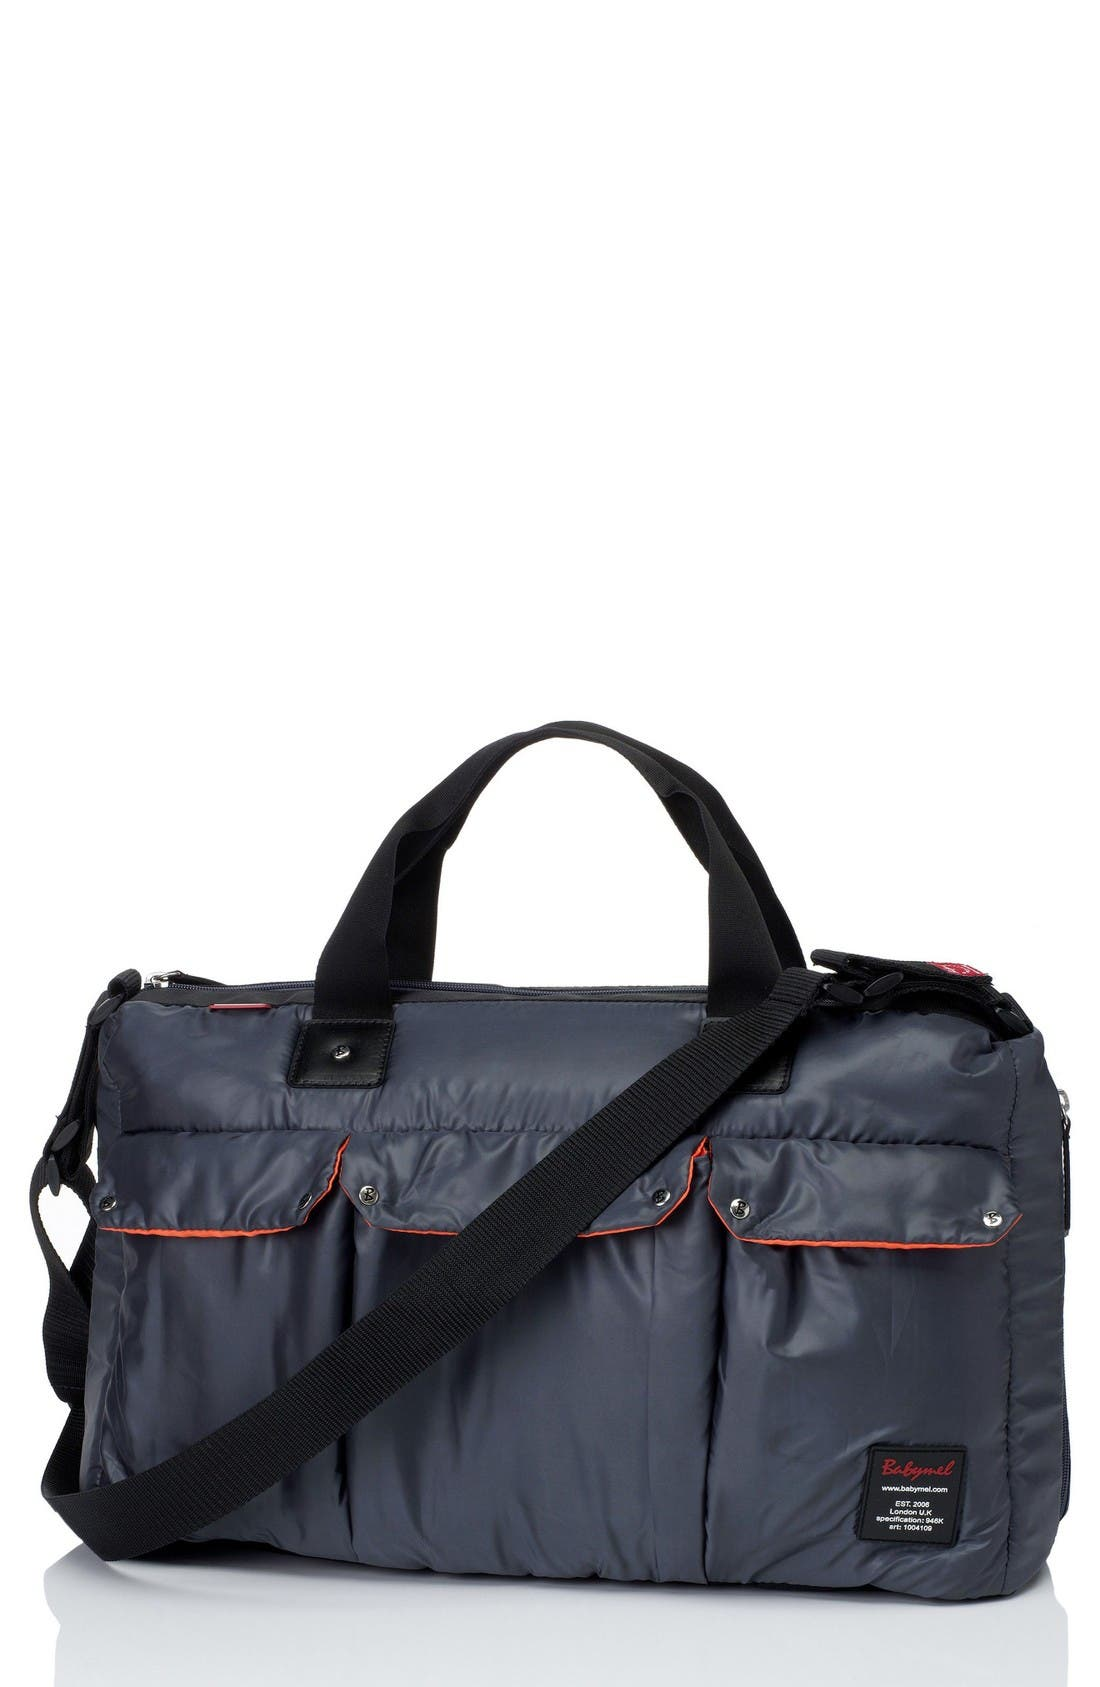 Babymel 'Soho' Messenger Diaper Bag